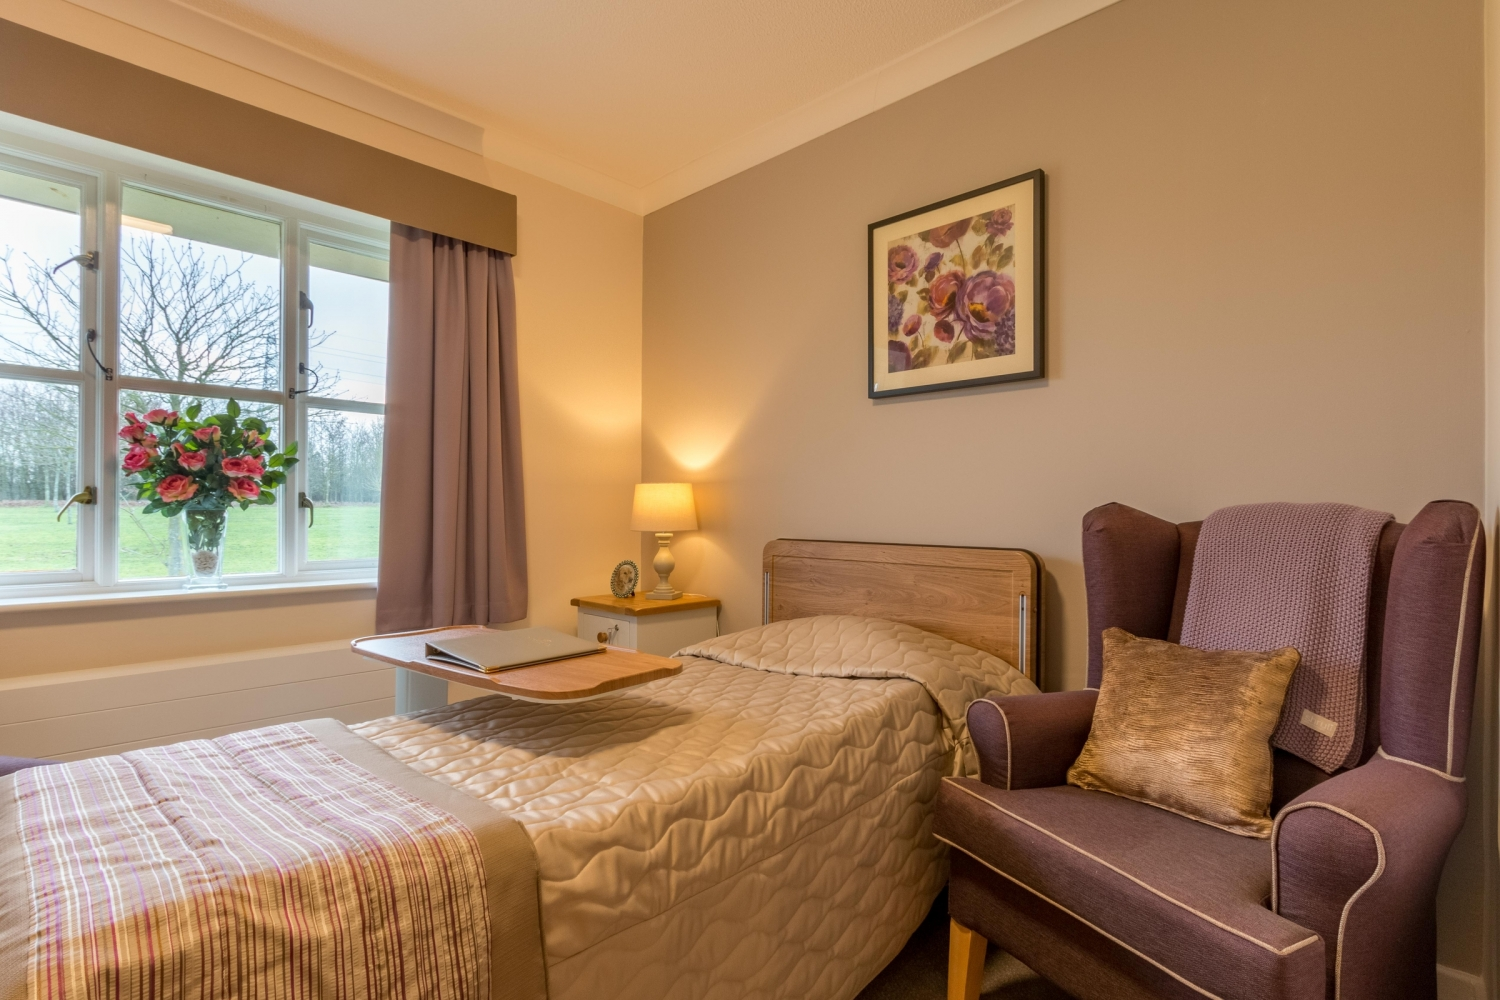 Care Home In Upminster